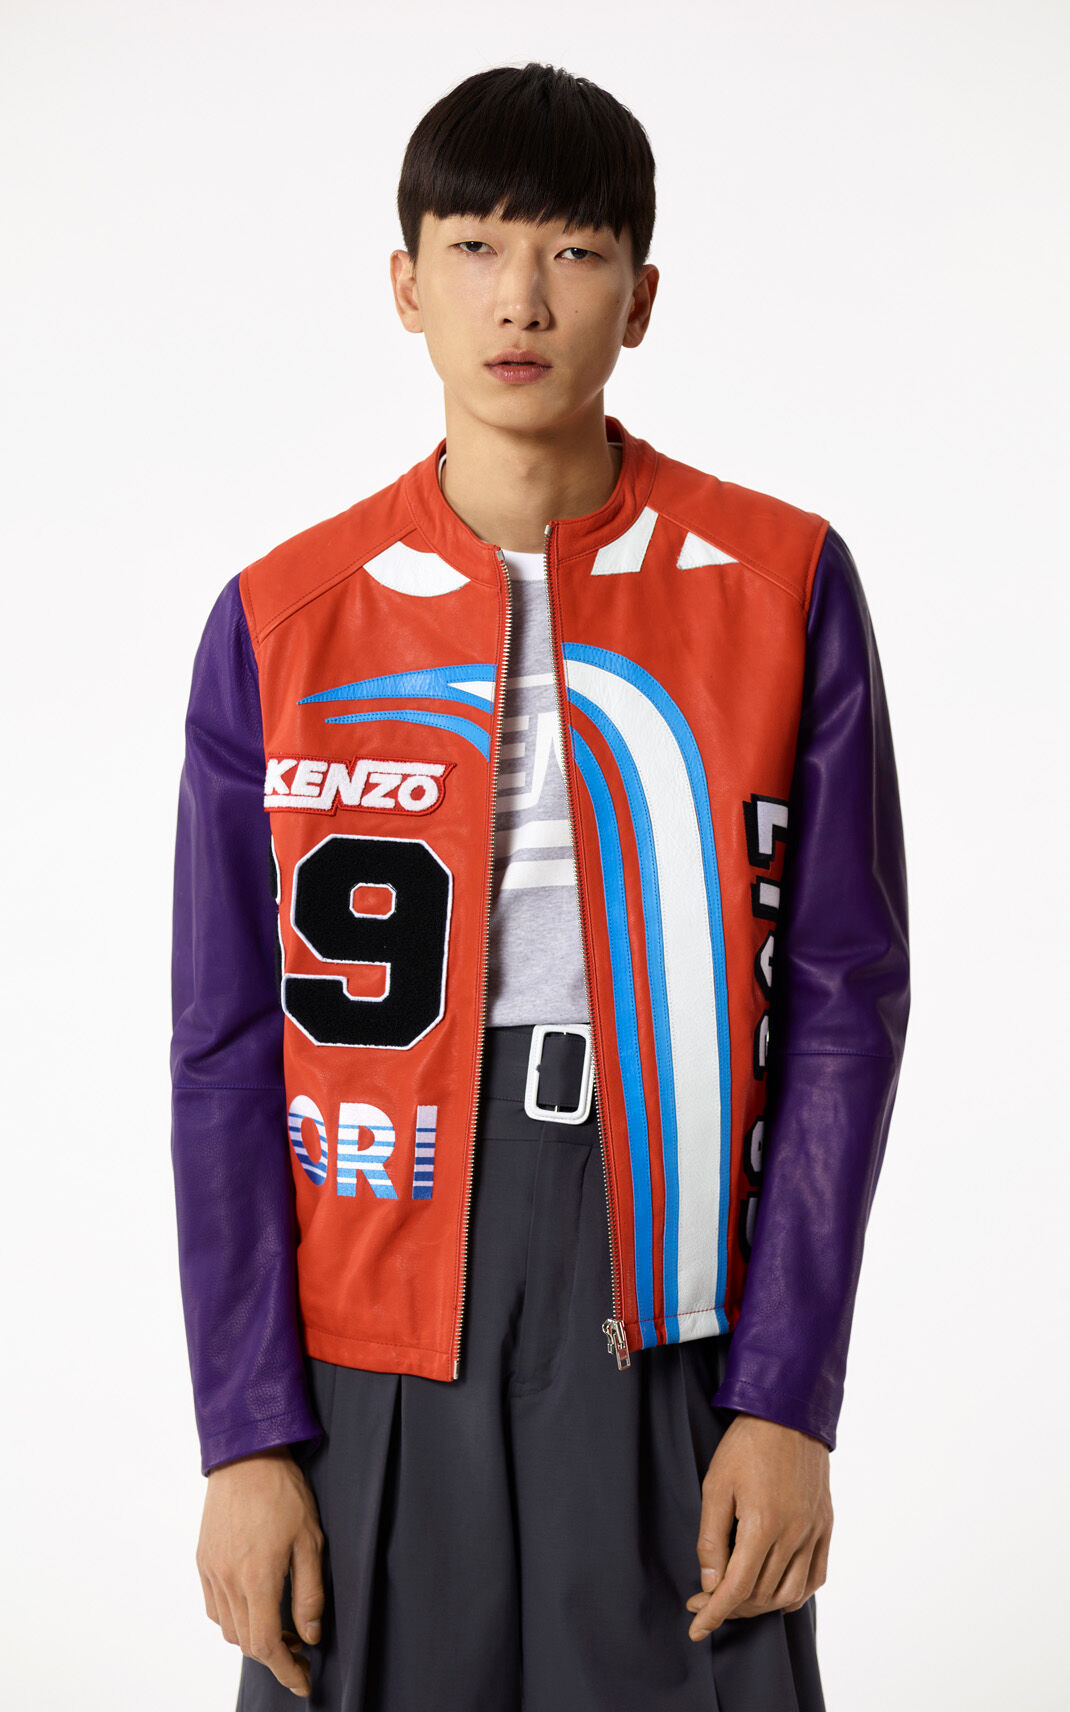 MEDIUM RED 'Hyper KENZO' Leather Jacket for men